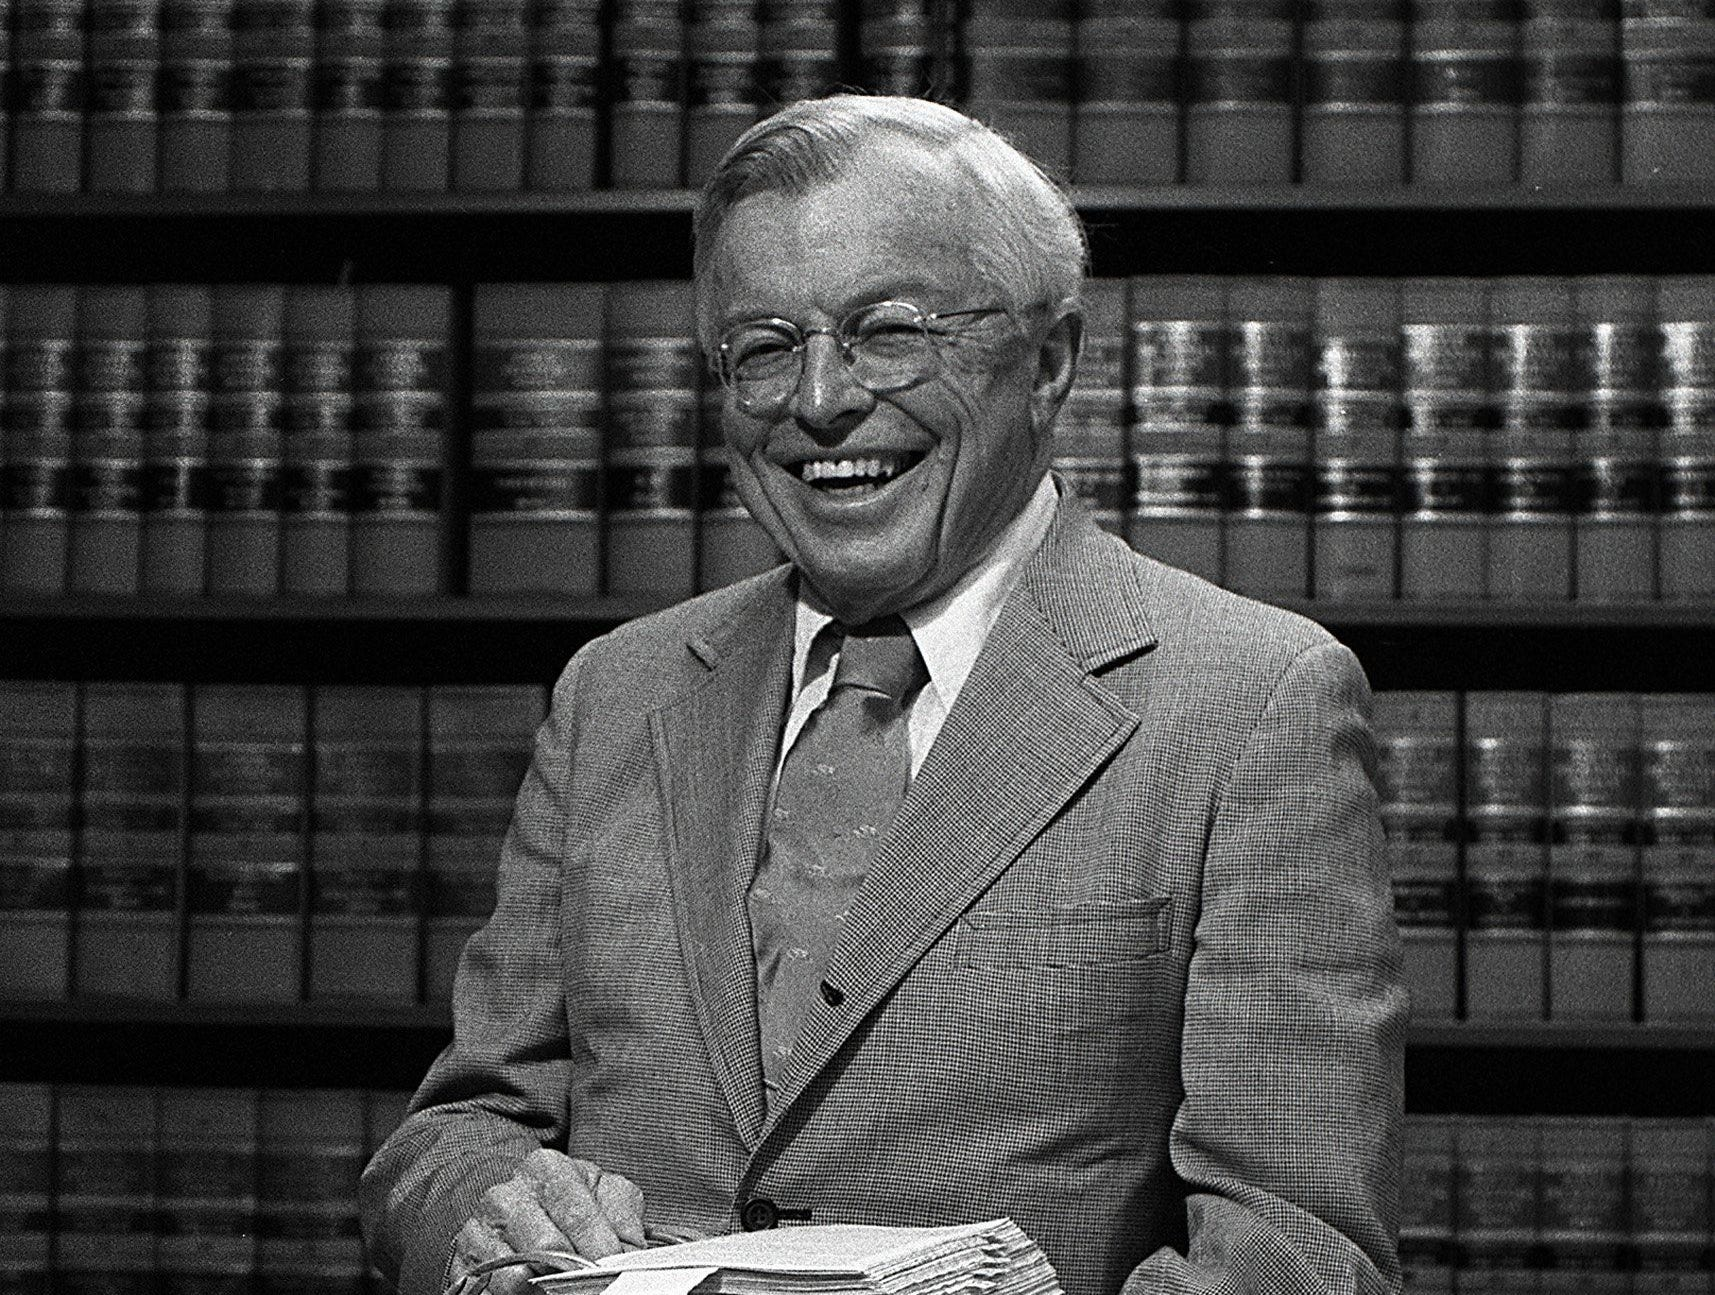 Attorney Lewis Donelson in his law office on 22 May 1984. Donelson was a member of the first Memphis City Council (1968-71) and state commissioner of finance and administration during Gov. Lamar Alexander's first term in office. He has been a member of the Tennessee Higher Education Commission and the Tennessee Technology Foundation.